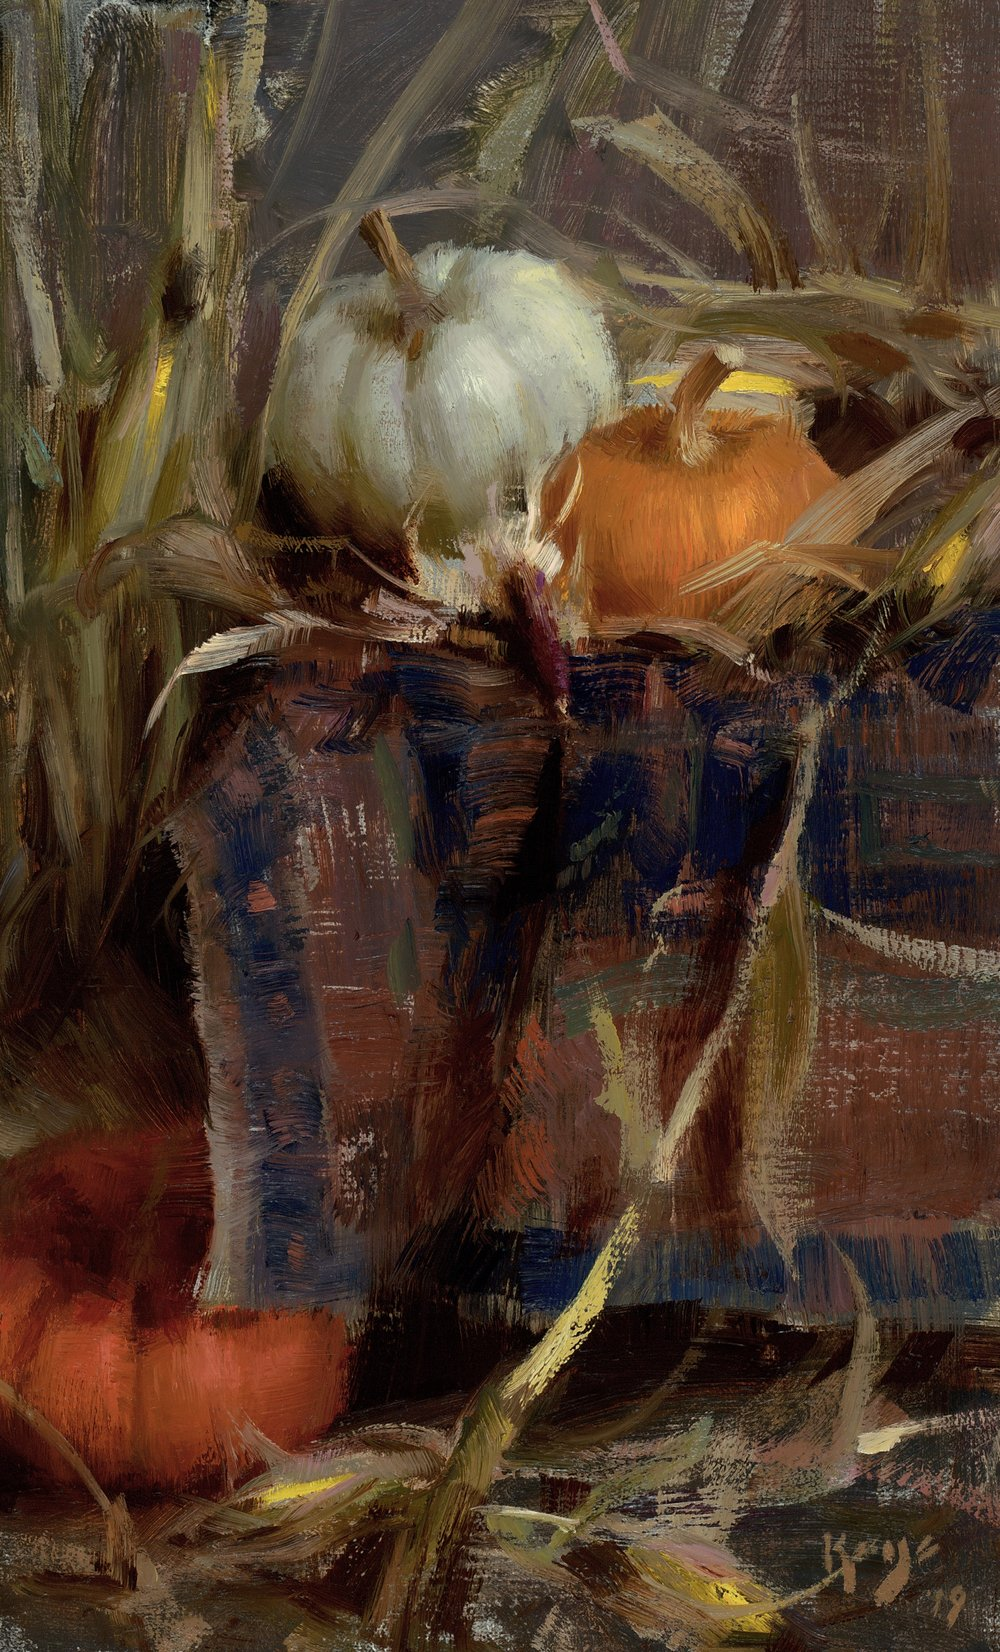 Autumn Inside, Daniel Keys, 2019, 12 x 7.5 inches oil on linen.jpg